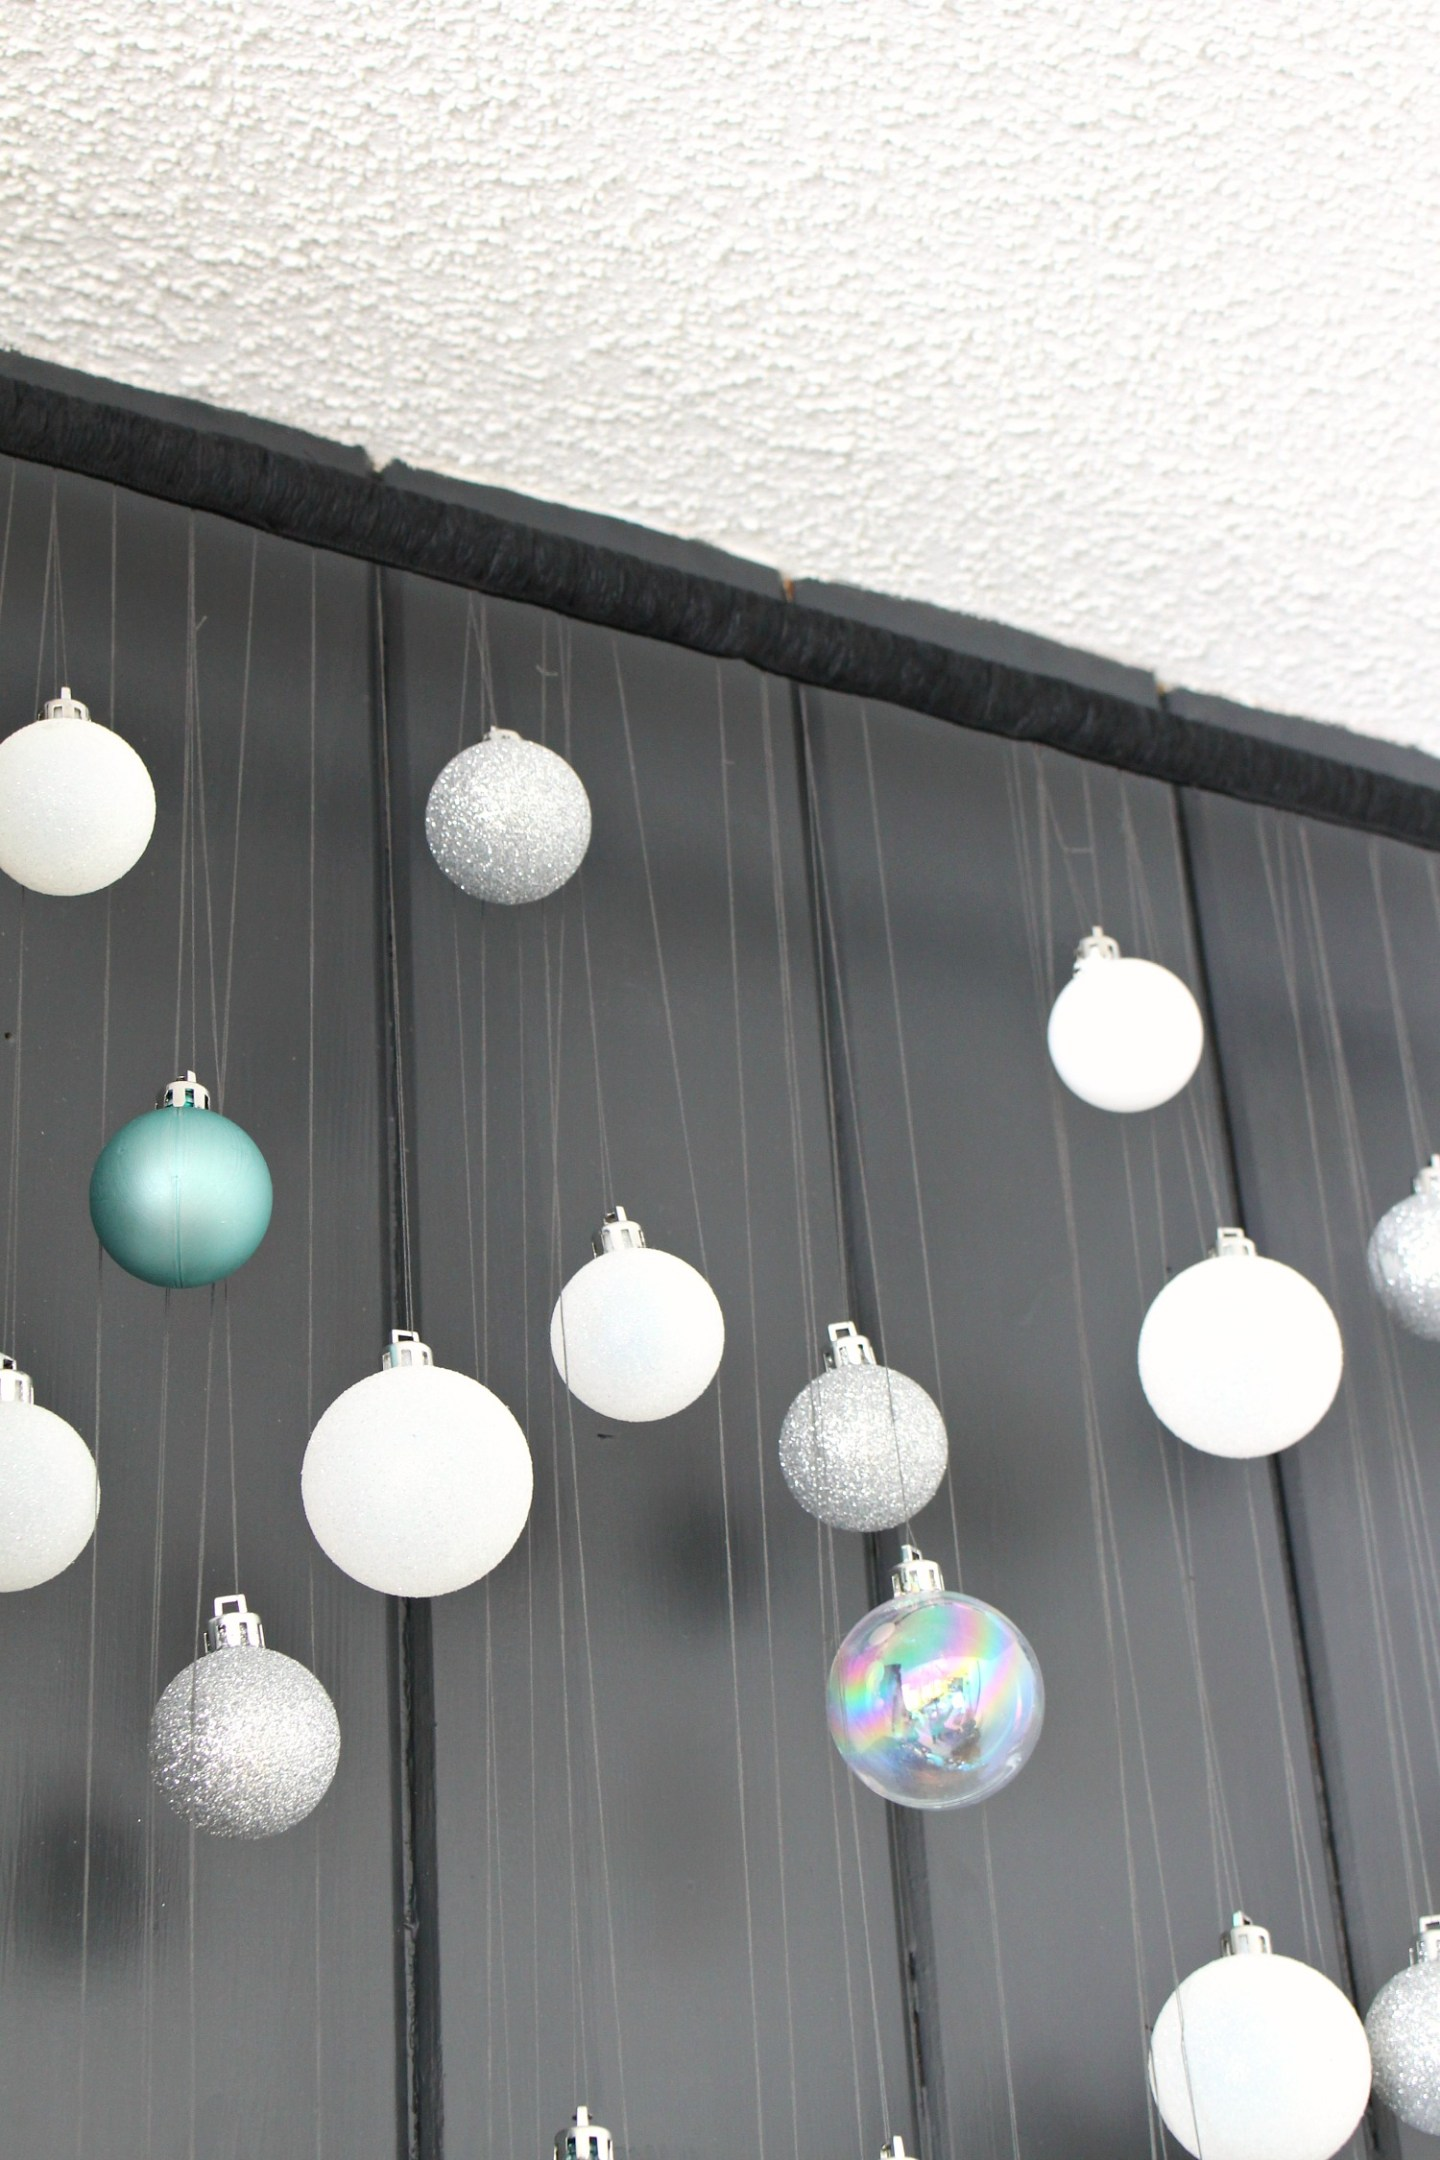 Hang Ornaments from Curtain Rod